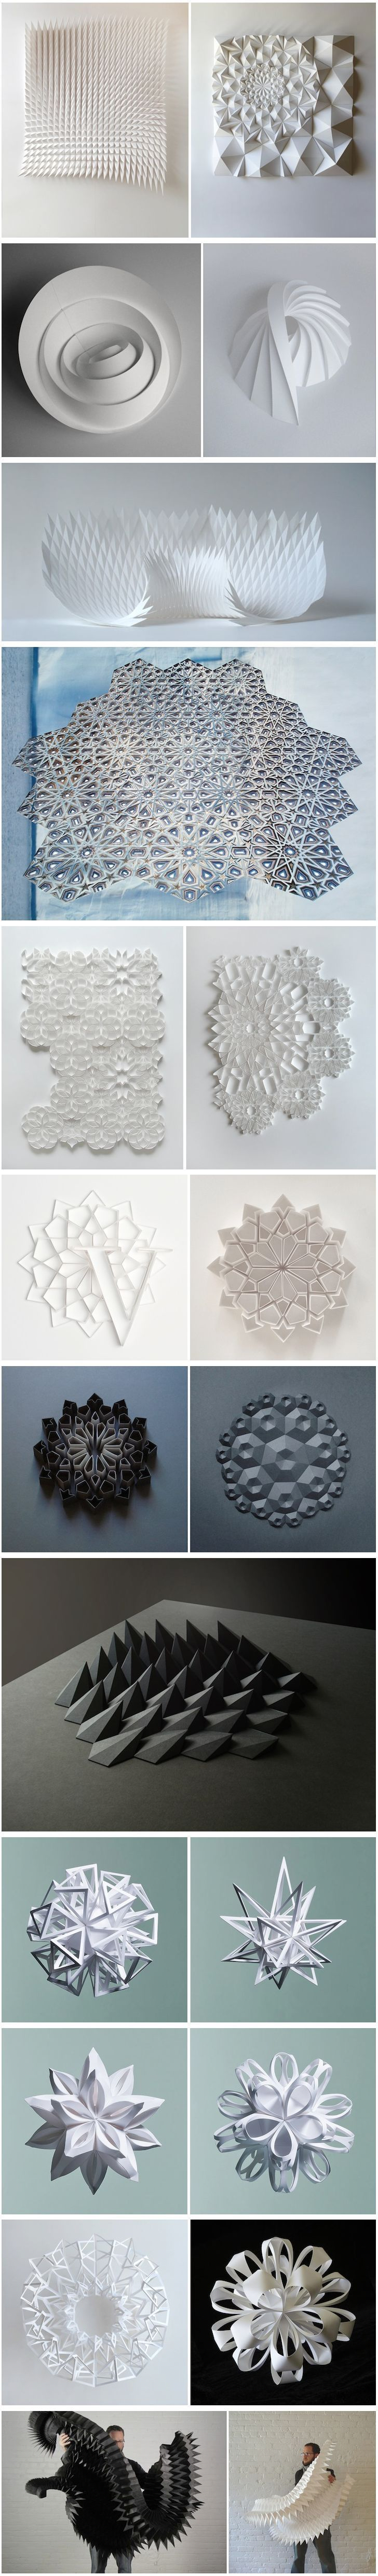 Geometric Paper Sculptures by Matt Shlian: